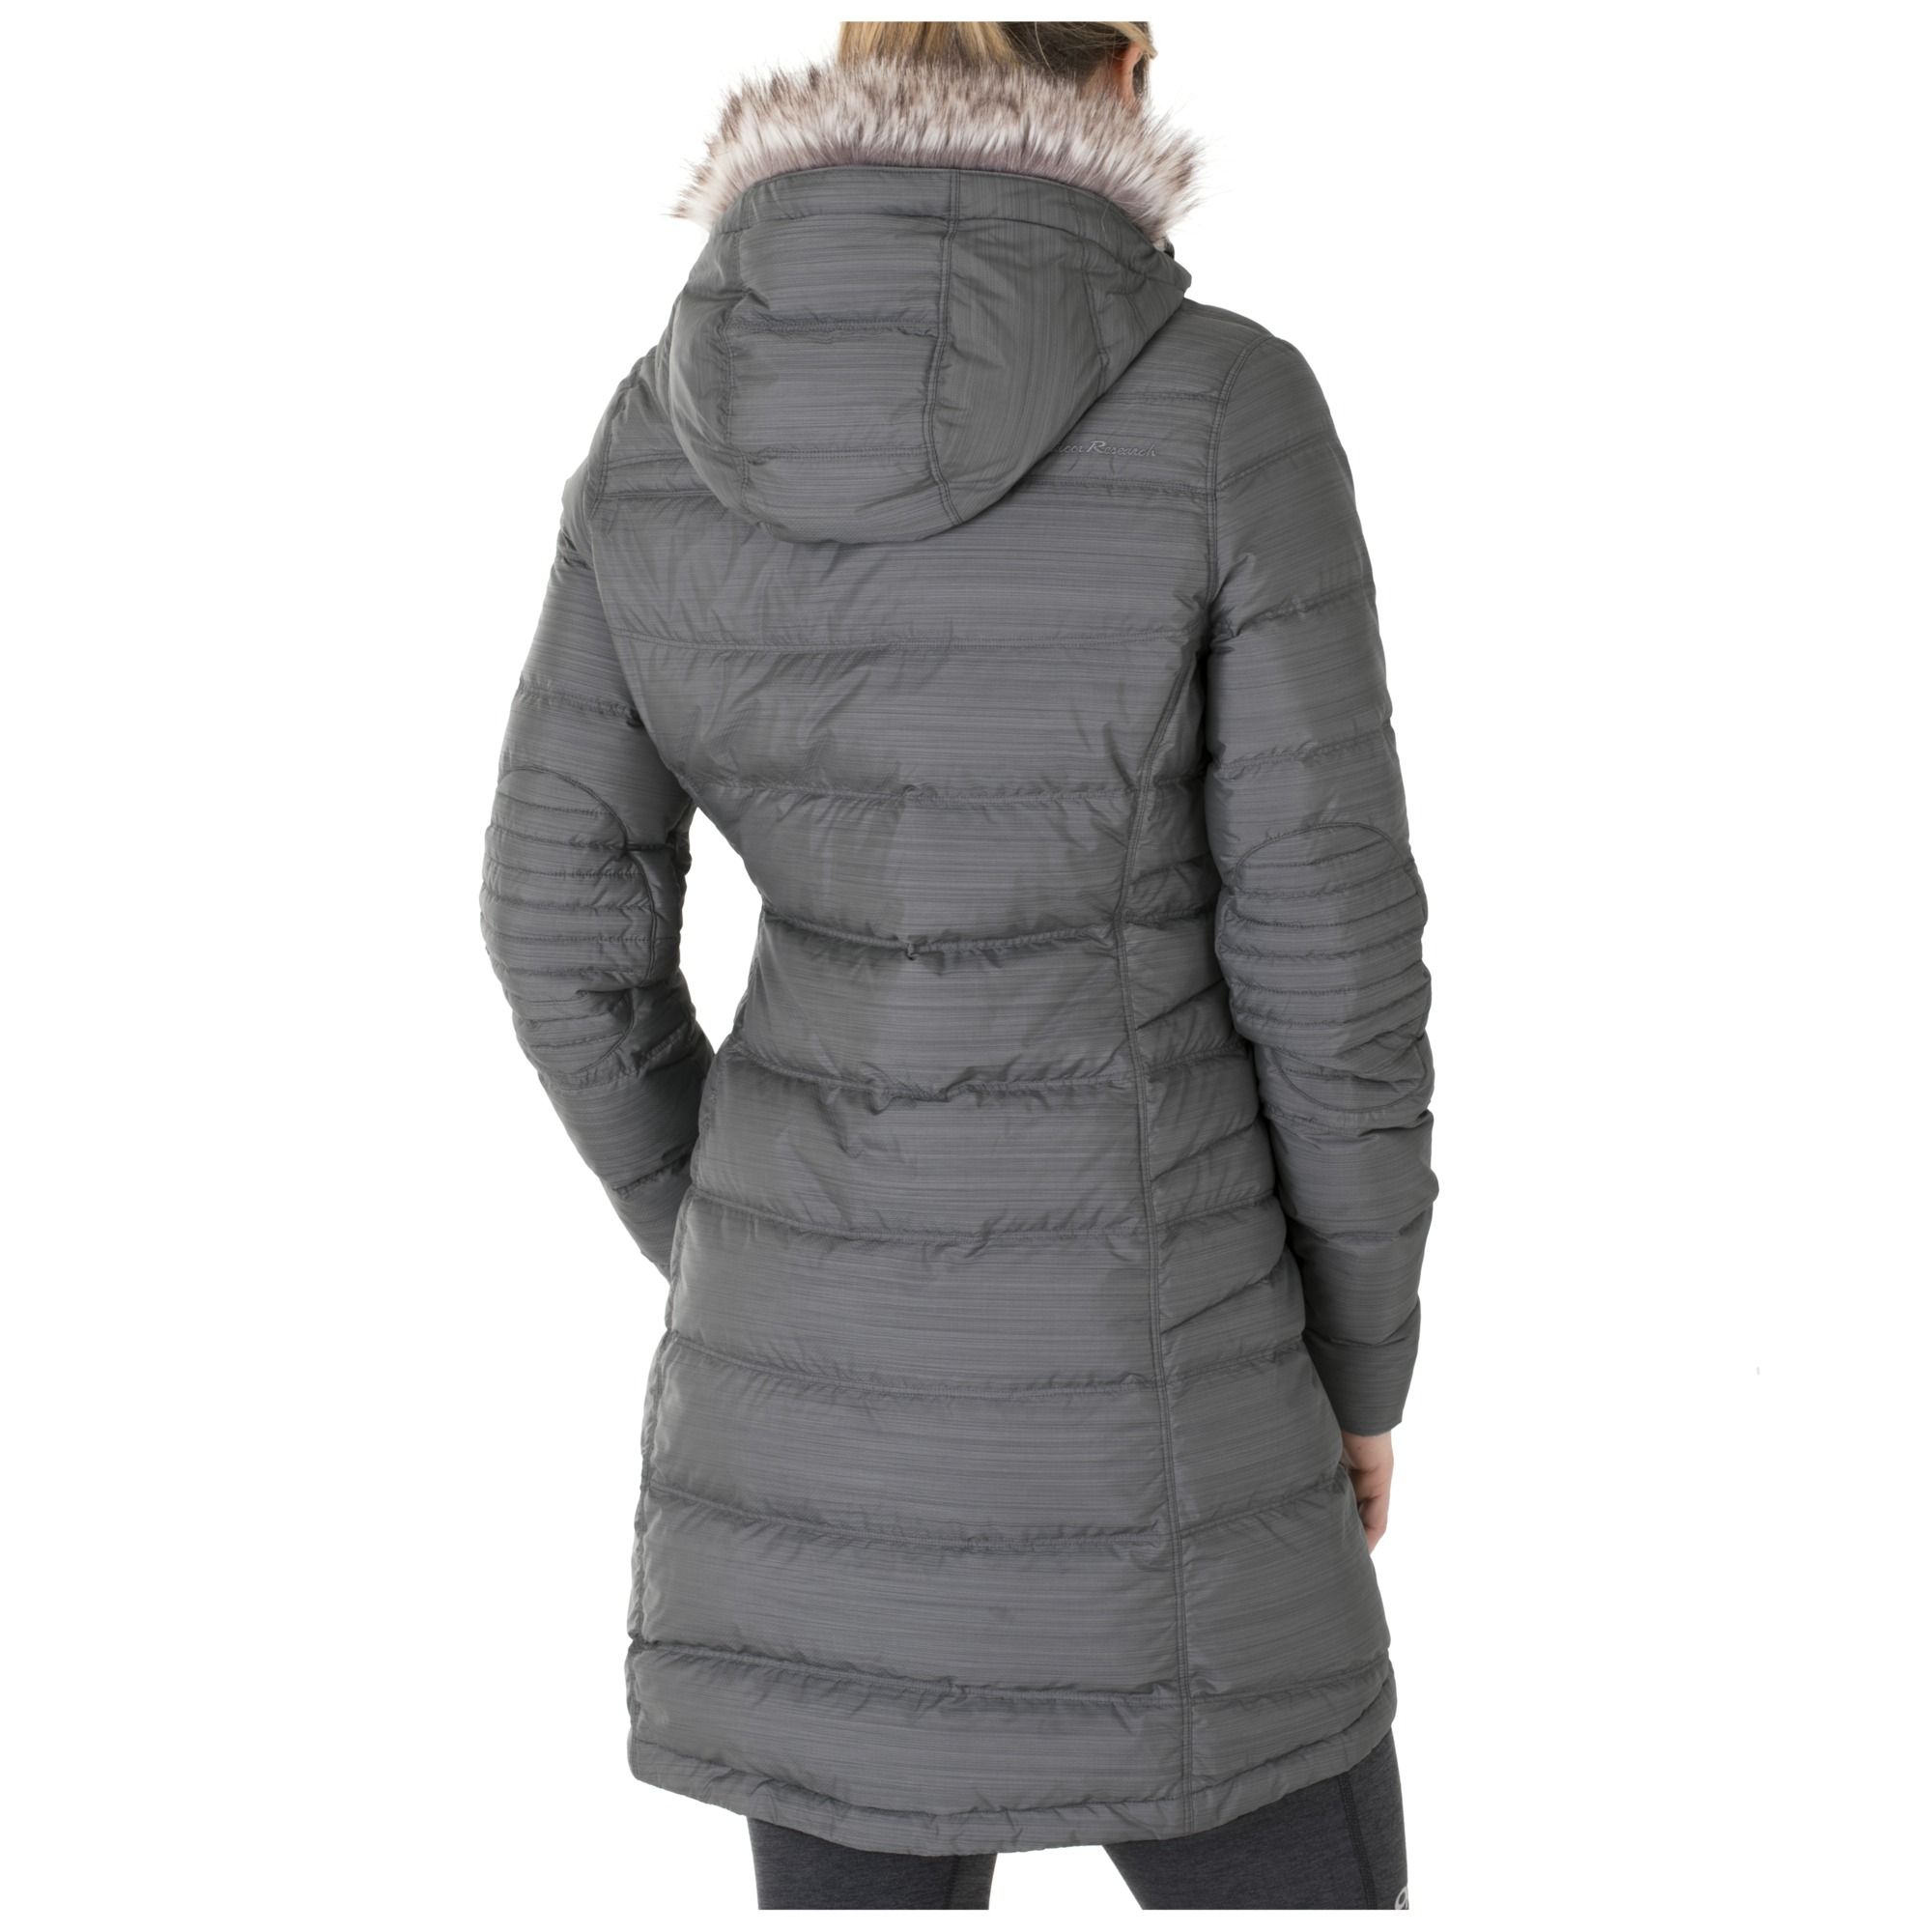 Women's Fernie Down Parka™ - black | Outdoor Research